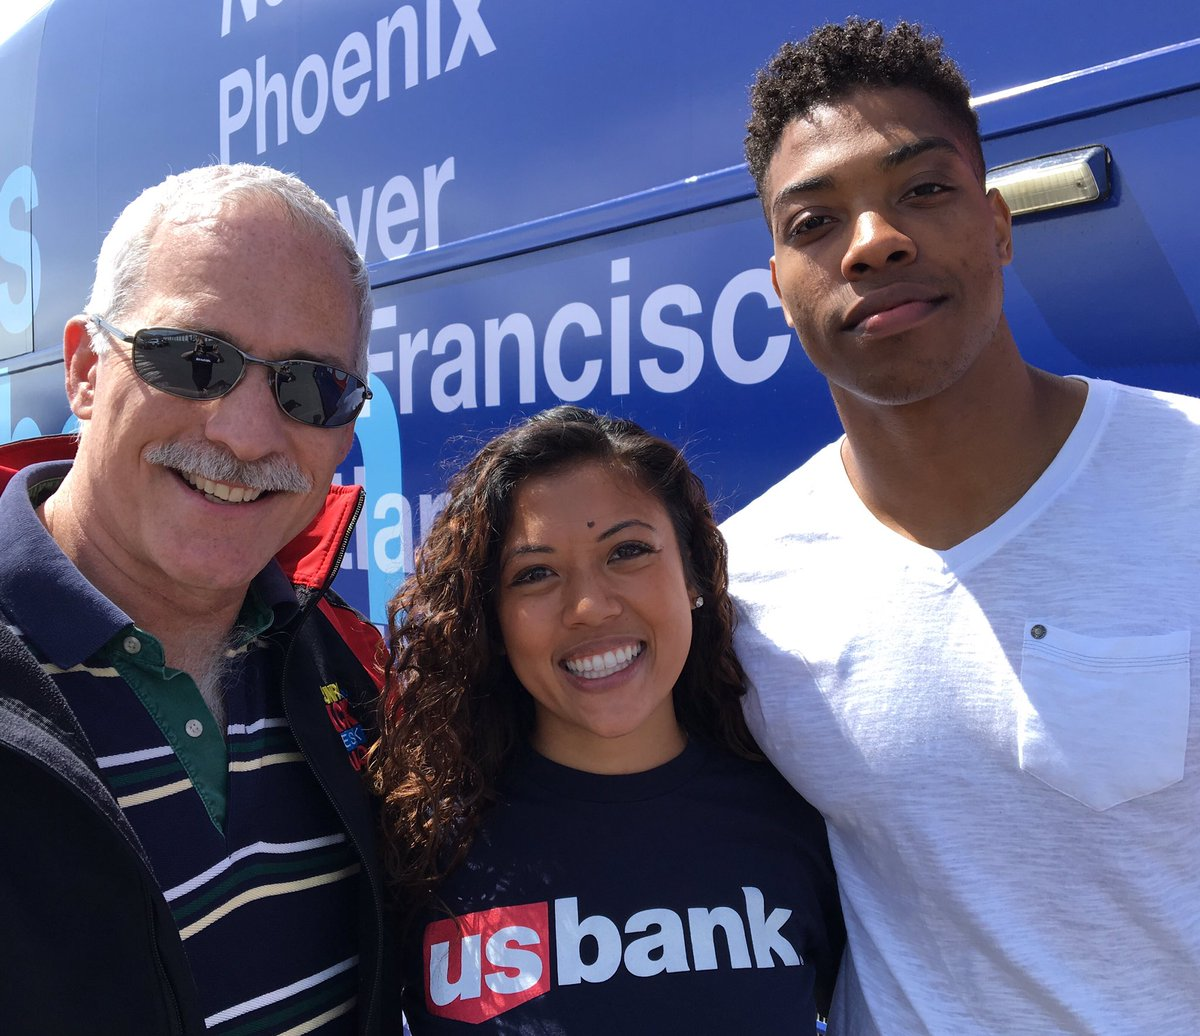 Went to see #USBank #communitypossible Relay Bus with captains #Dixcy & #Jibreel. #Medford: 12th city. Great team! https://t.co/f5IoF8AcoK